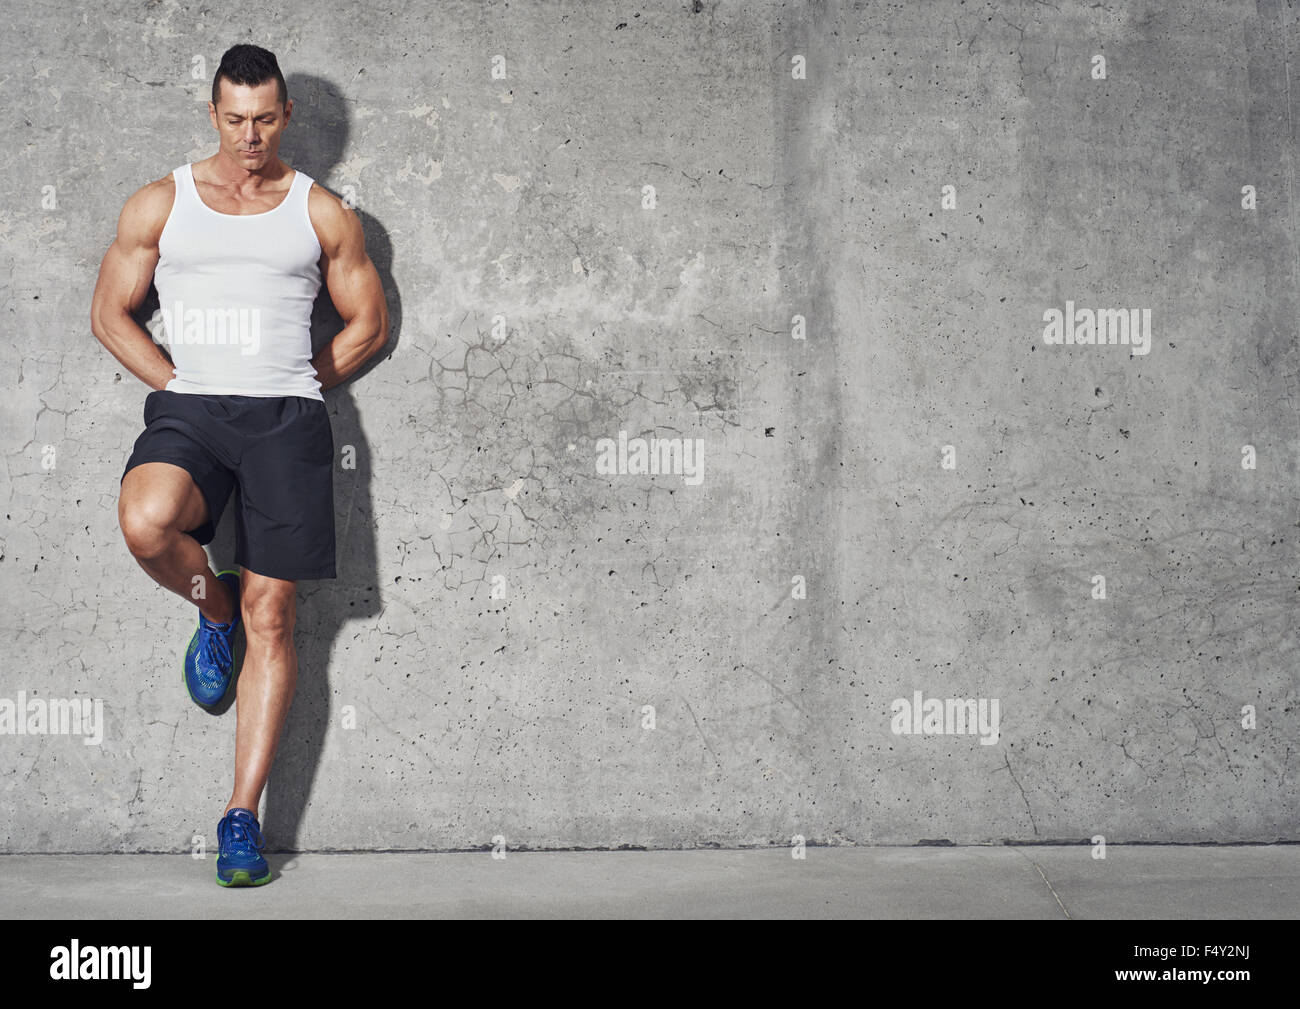 Fit and healthy man, muscular build portrait, fitness concept with copy space on grey background - Stock Image